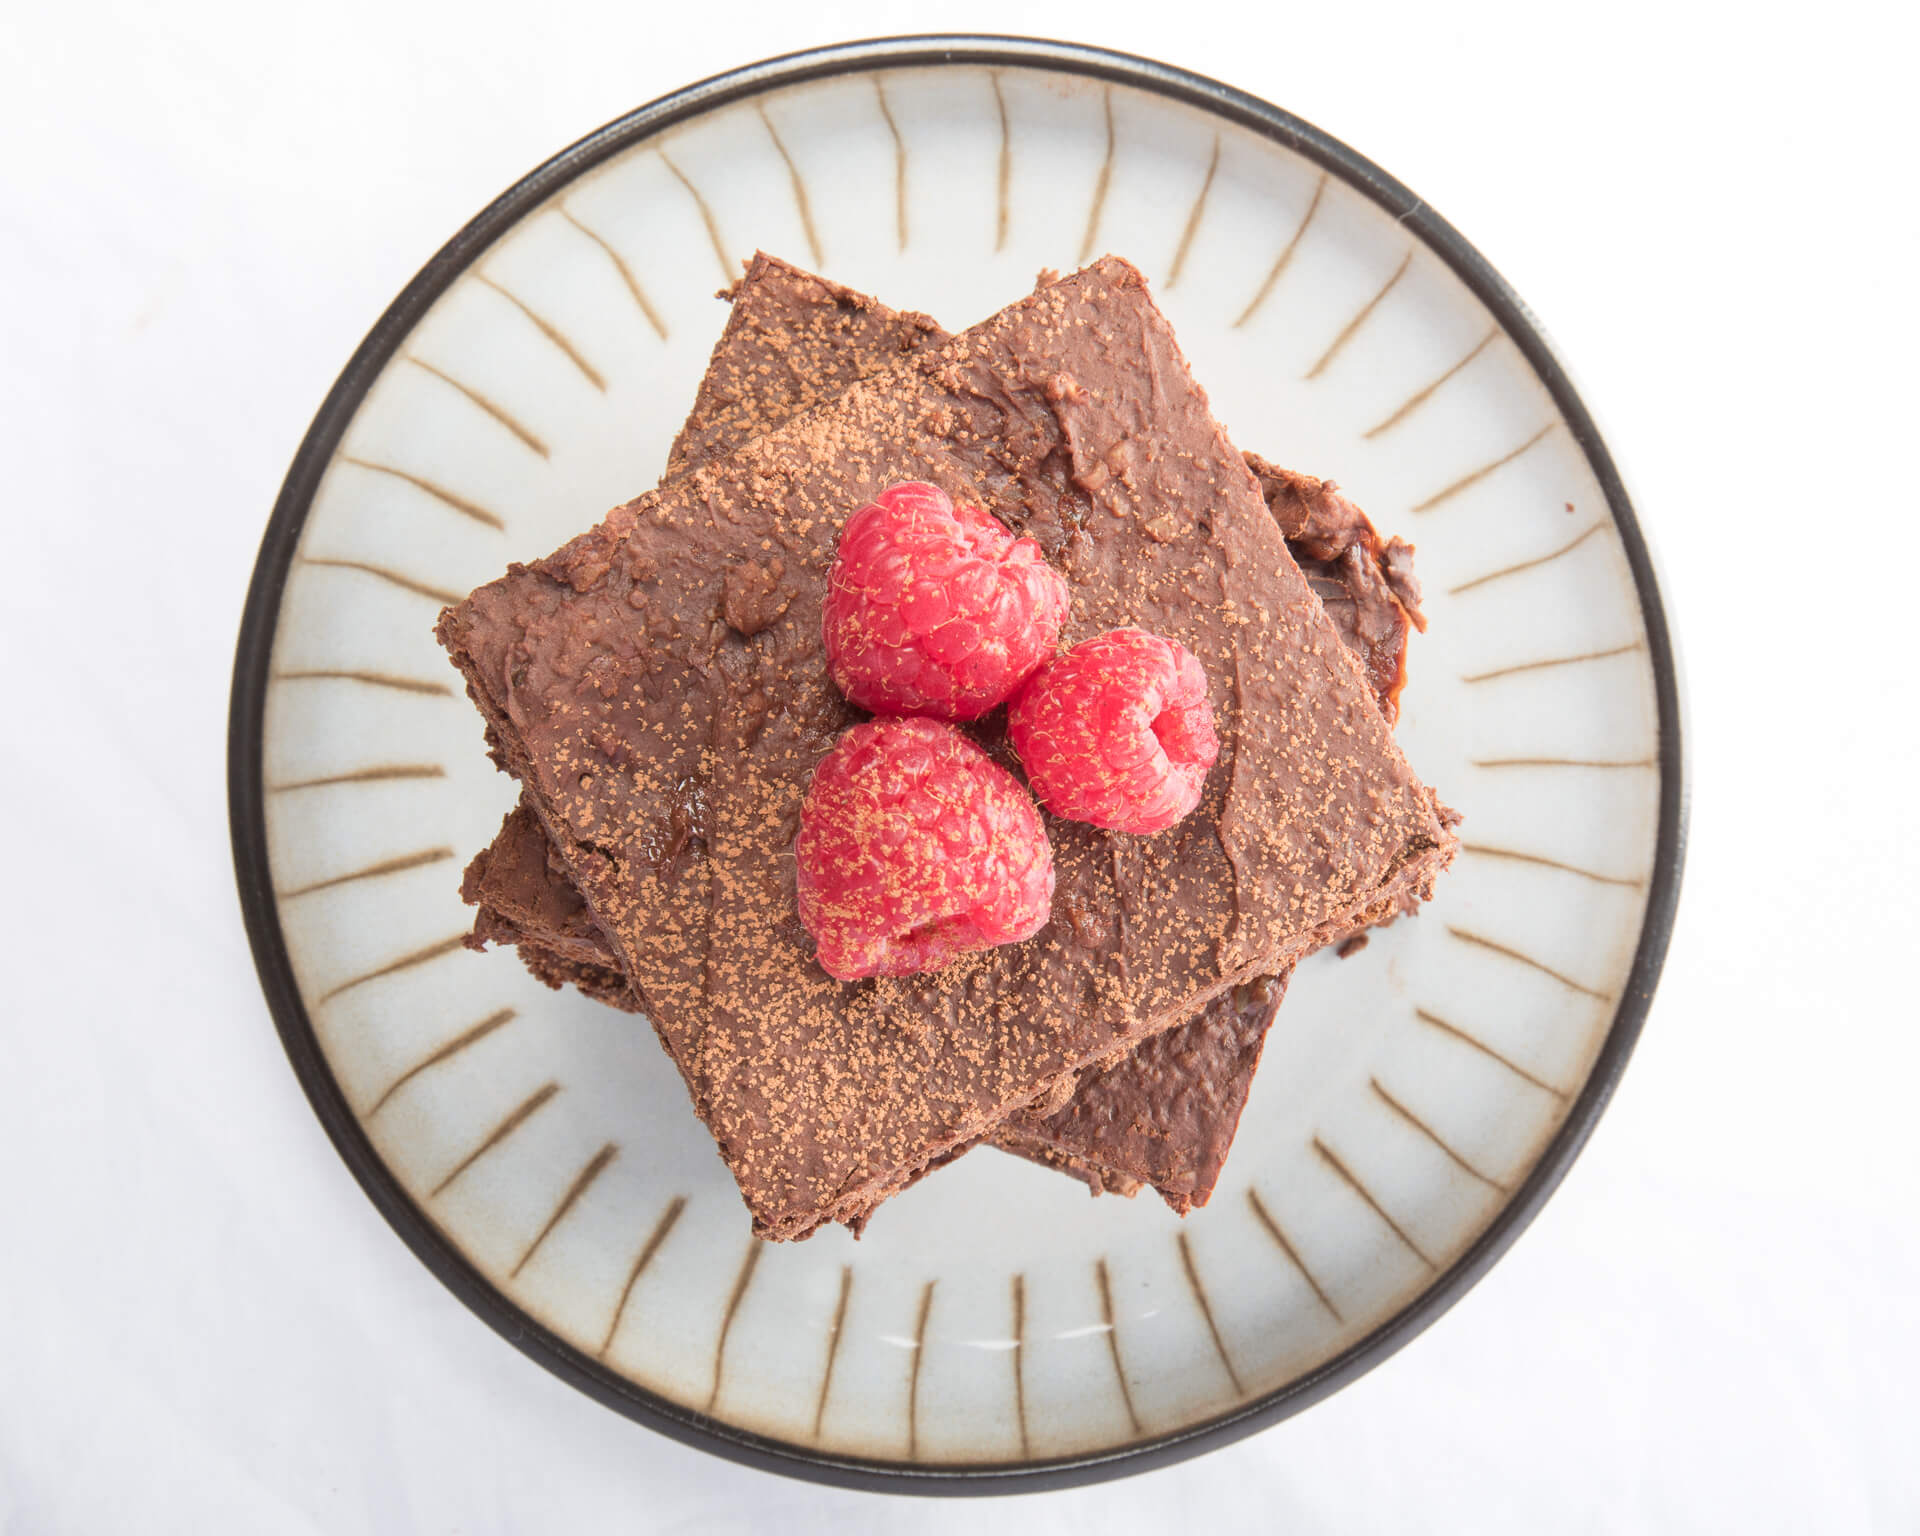 A Stack of Chocolate Brownies Topped With Three Fresh Raspberries Viewed From Above